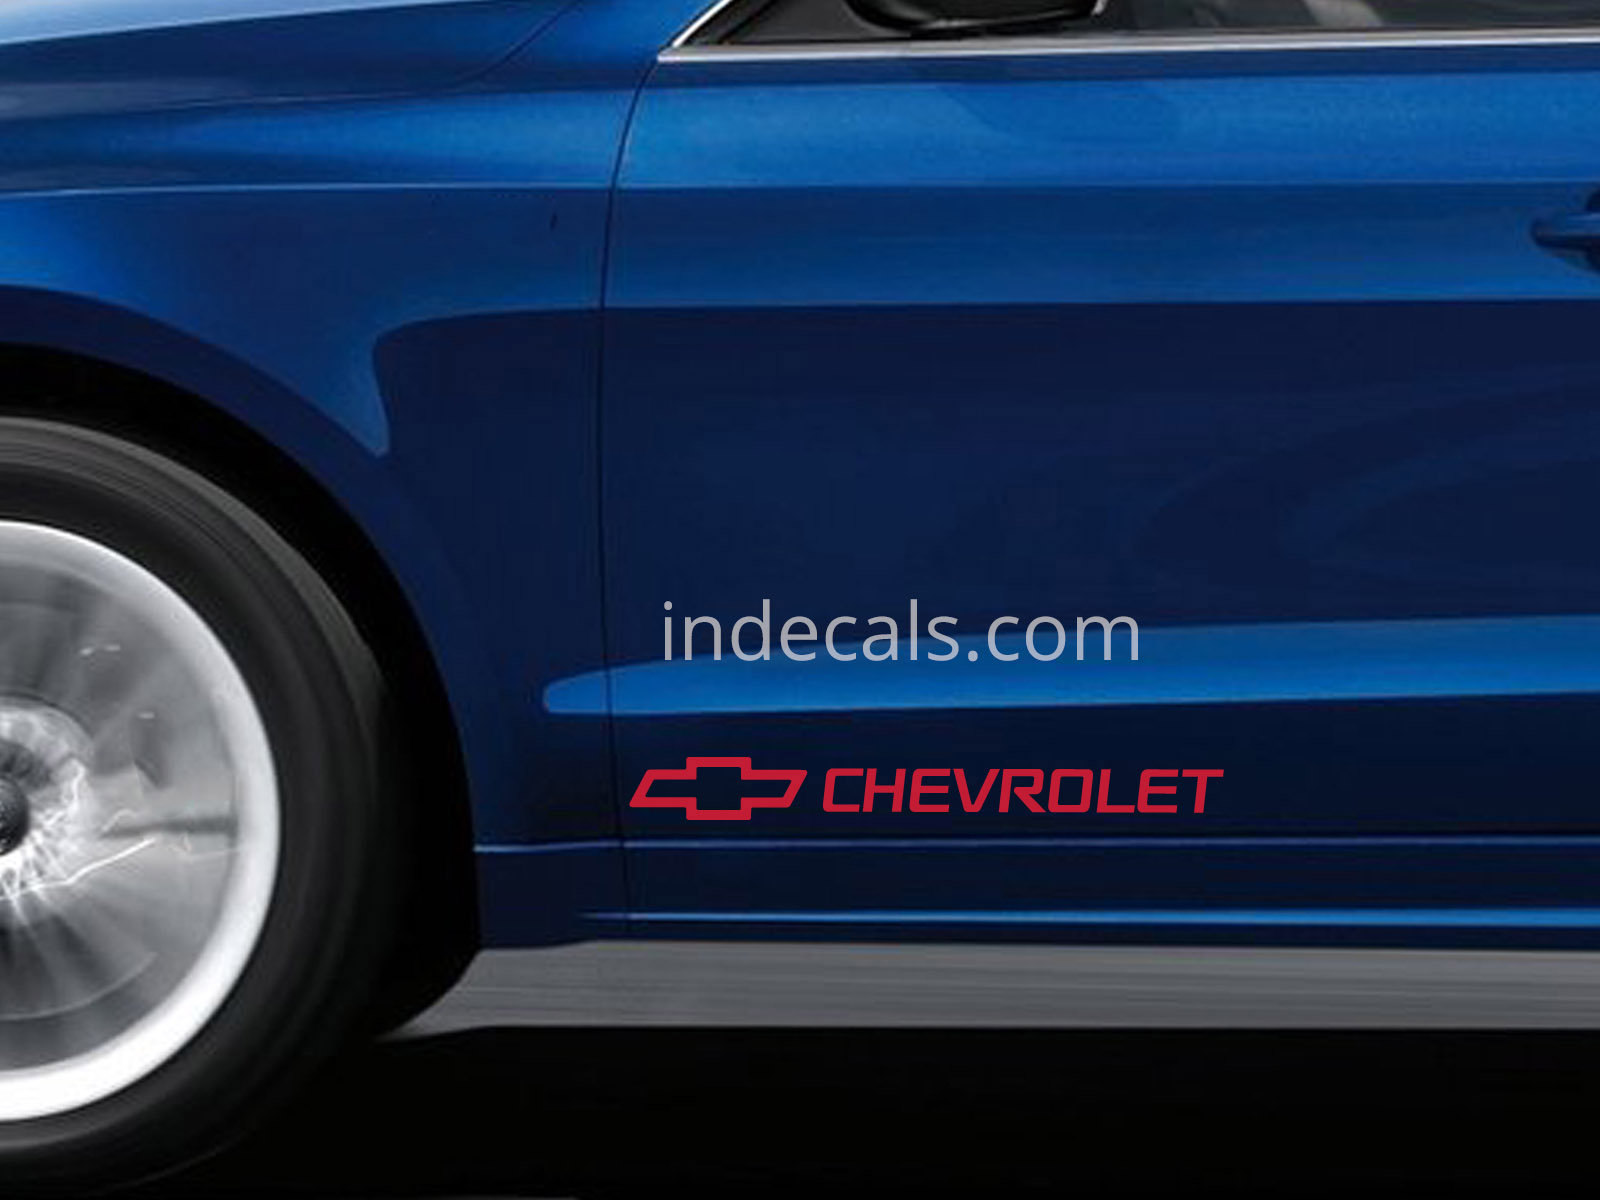 2 x Chevrolet Stickers for Doors Large - Red